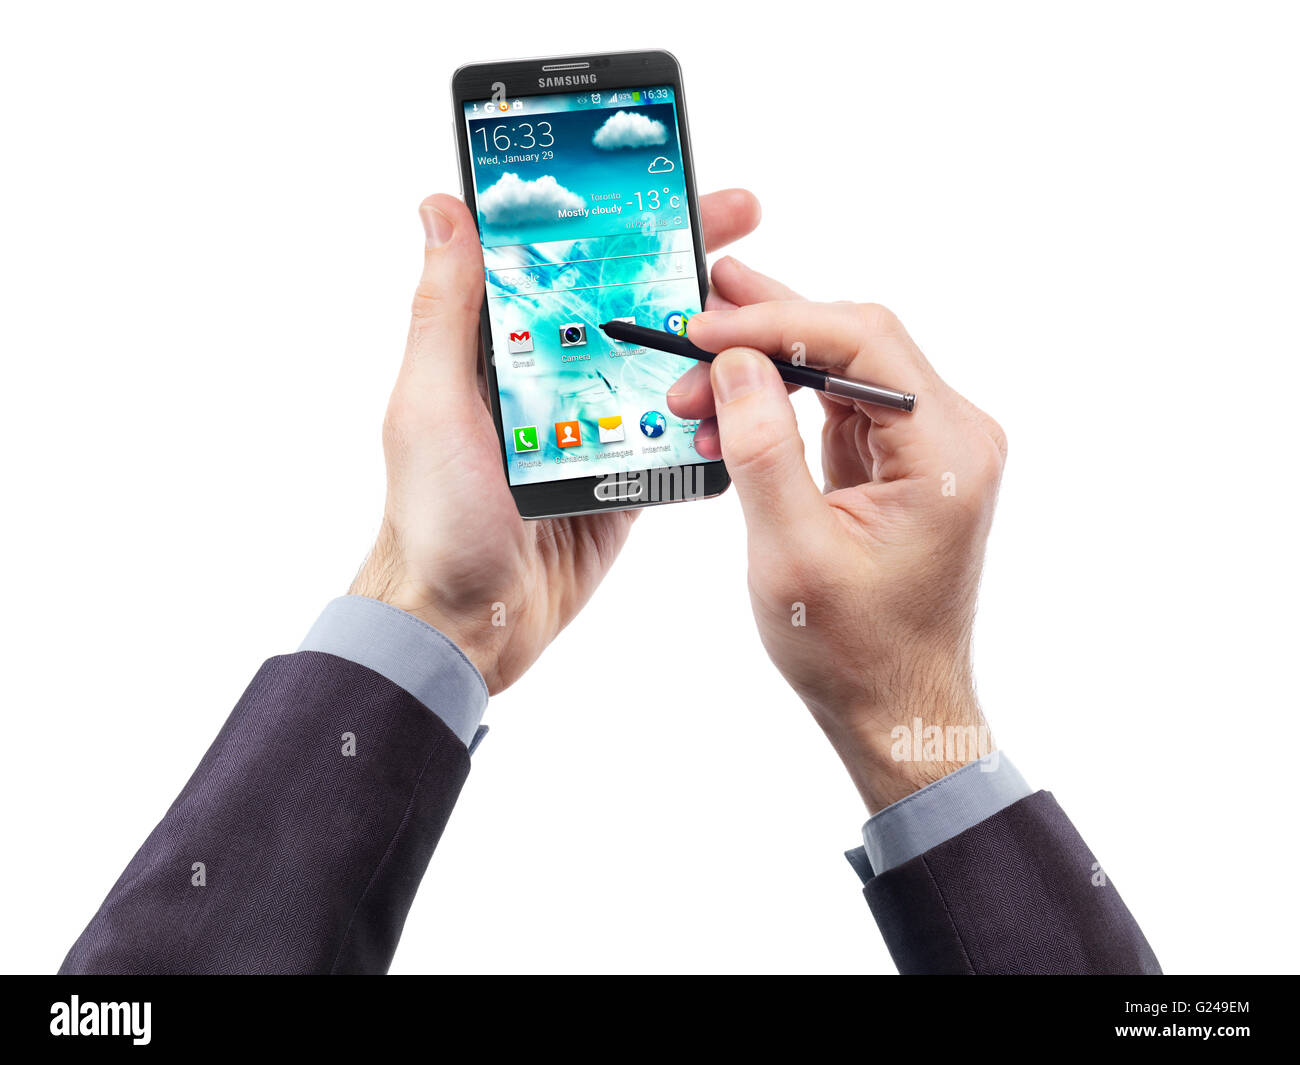 Man's hands with Samsung Galaxy Note III smartphone and a pointer - Stock Image